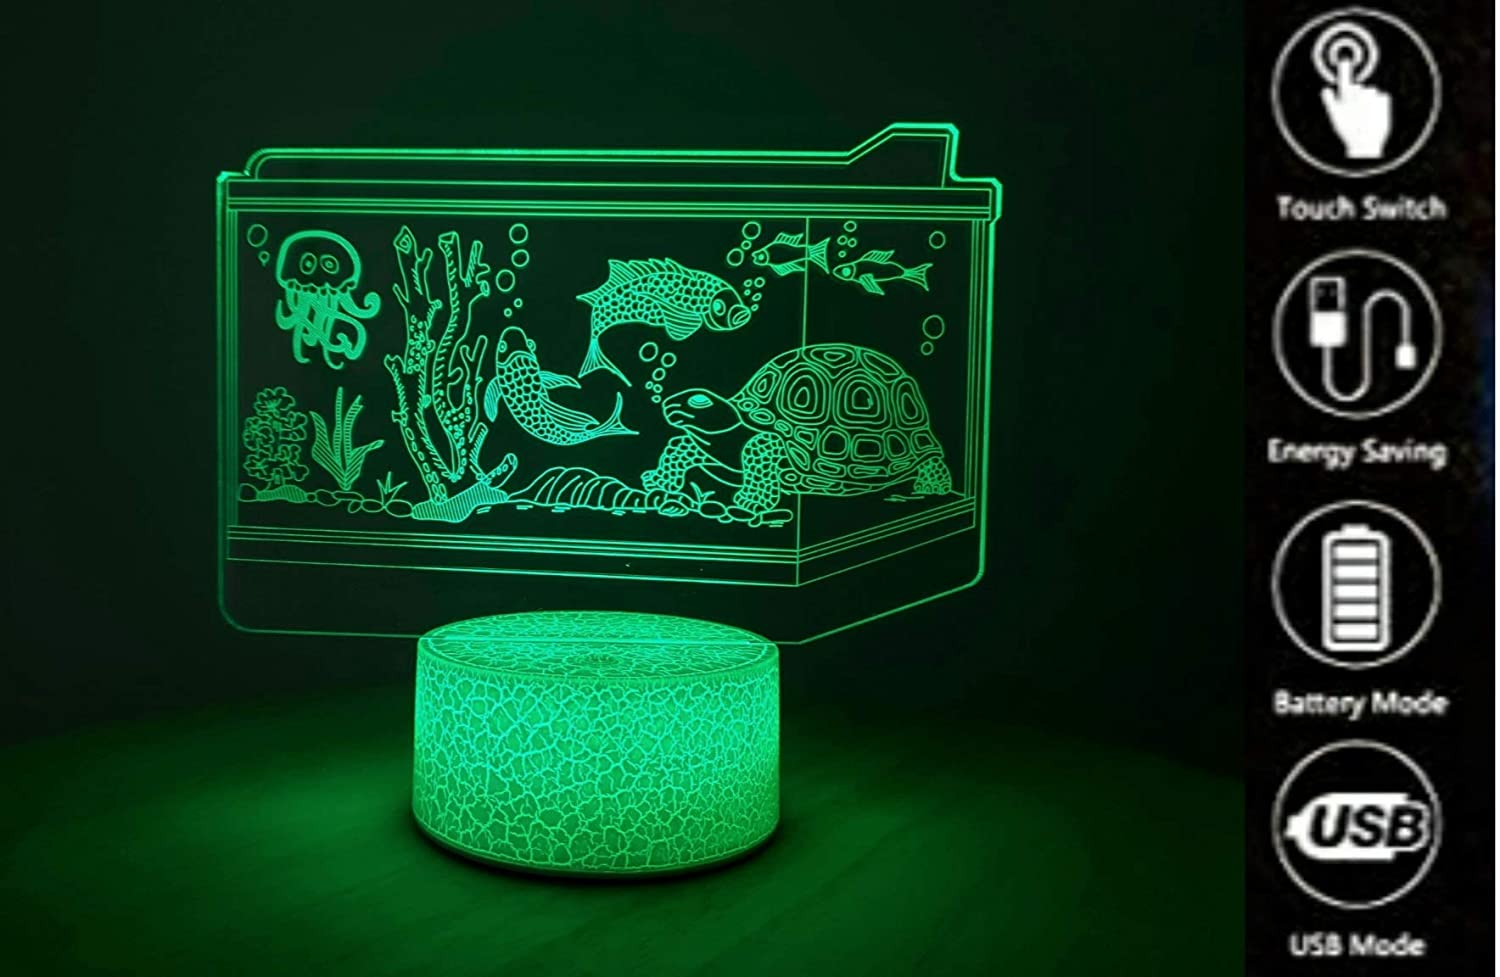 Zillion 3D Fish Tank Illusion lamp with Aquatic Ecosystem for Kids Bedroom. Best Gift for Boys, Girls Birthday. Plugin Night lamp for Children Room.